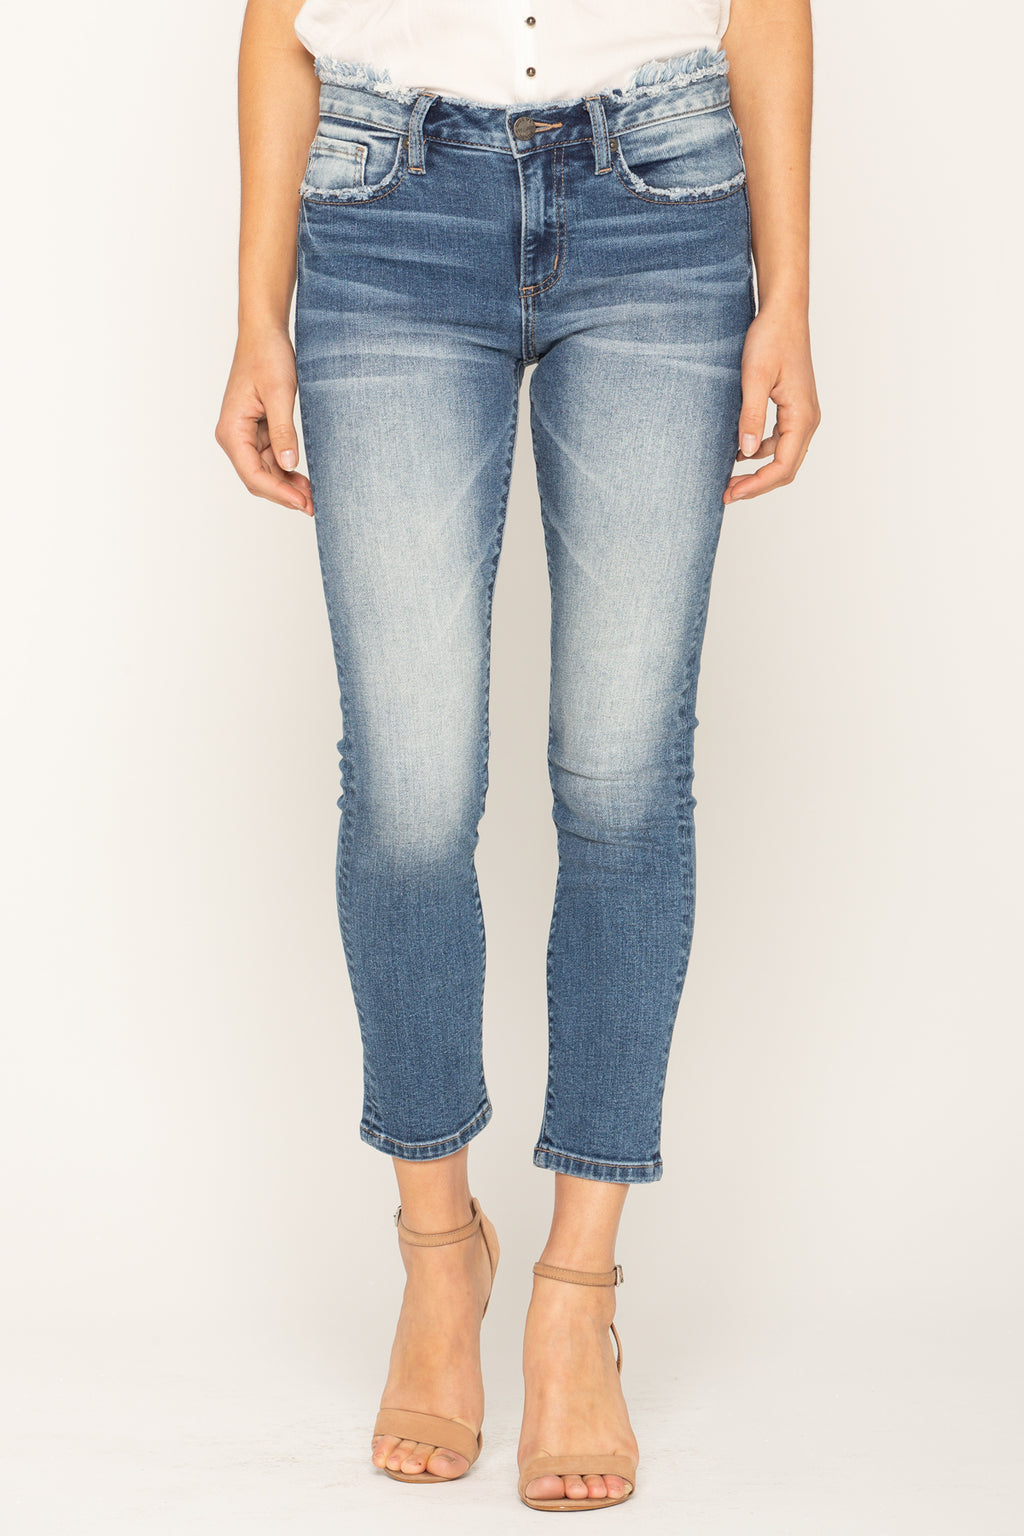 a4793b929 YOUR MOMENT SKINNY JEANS